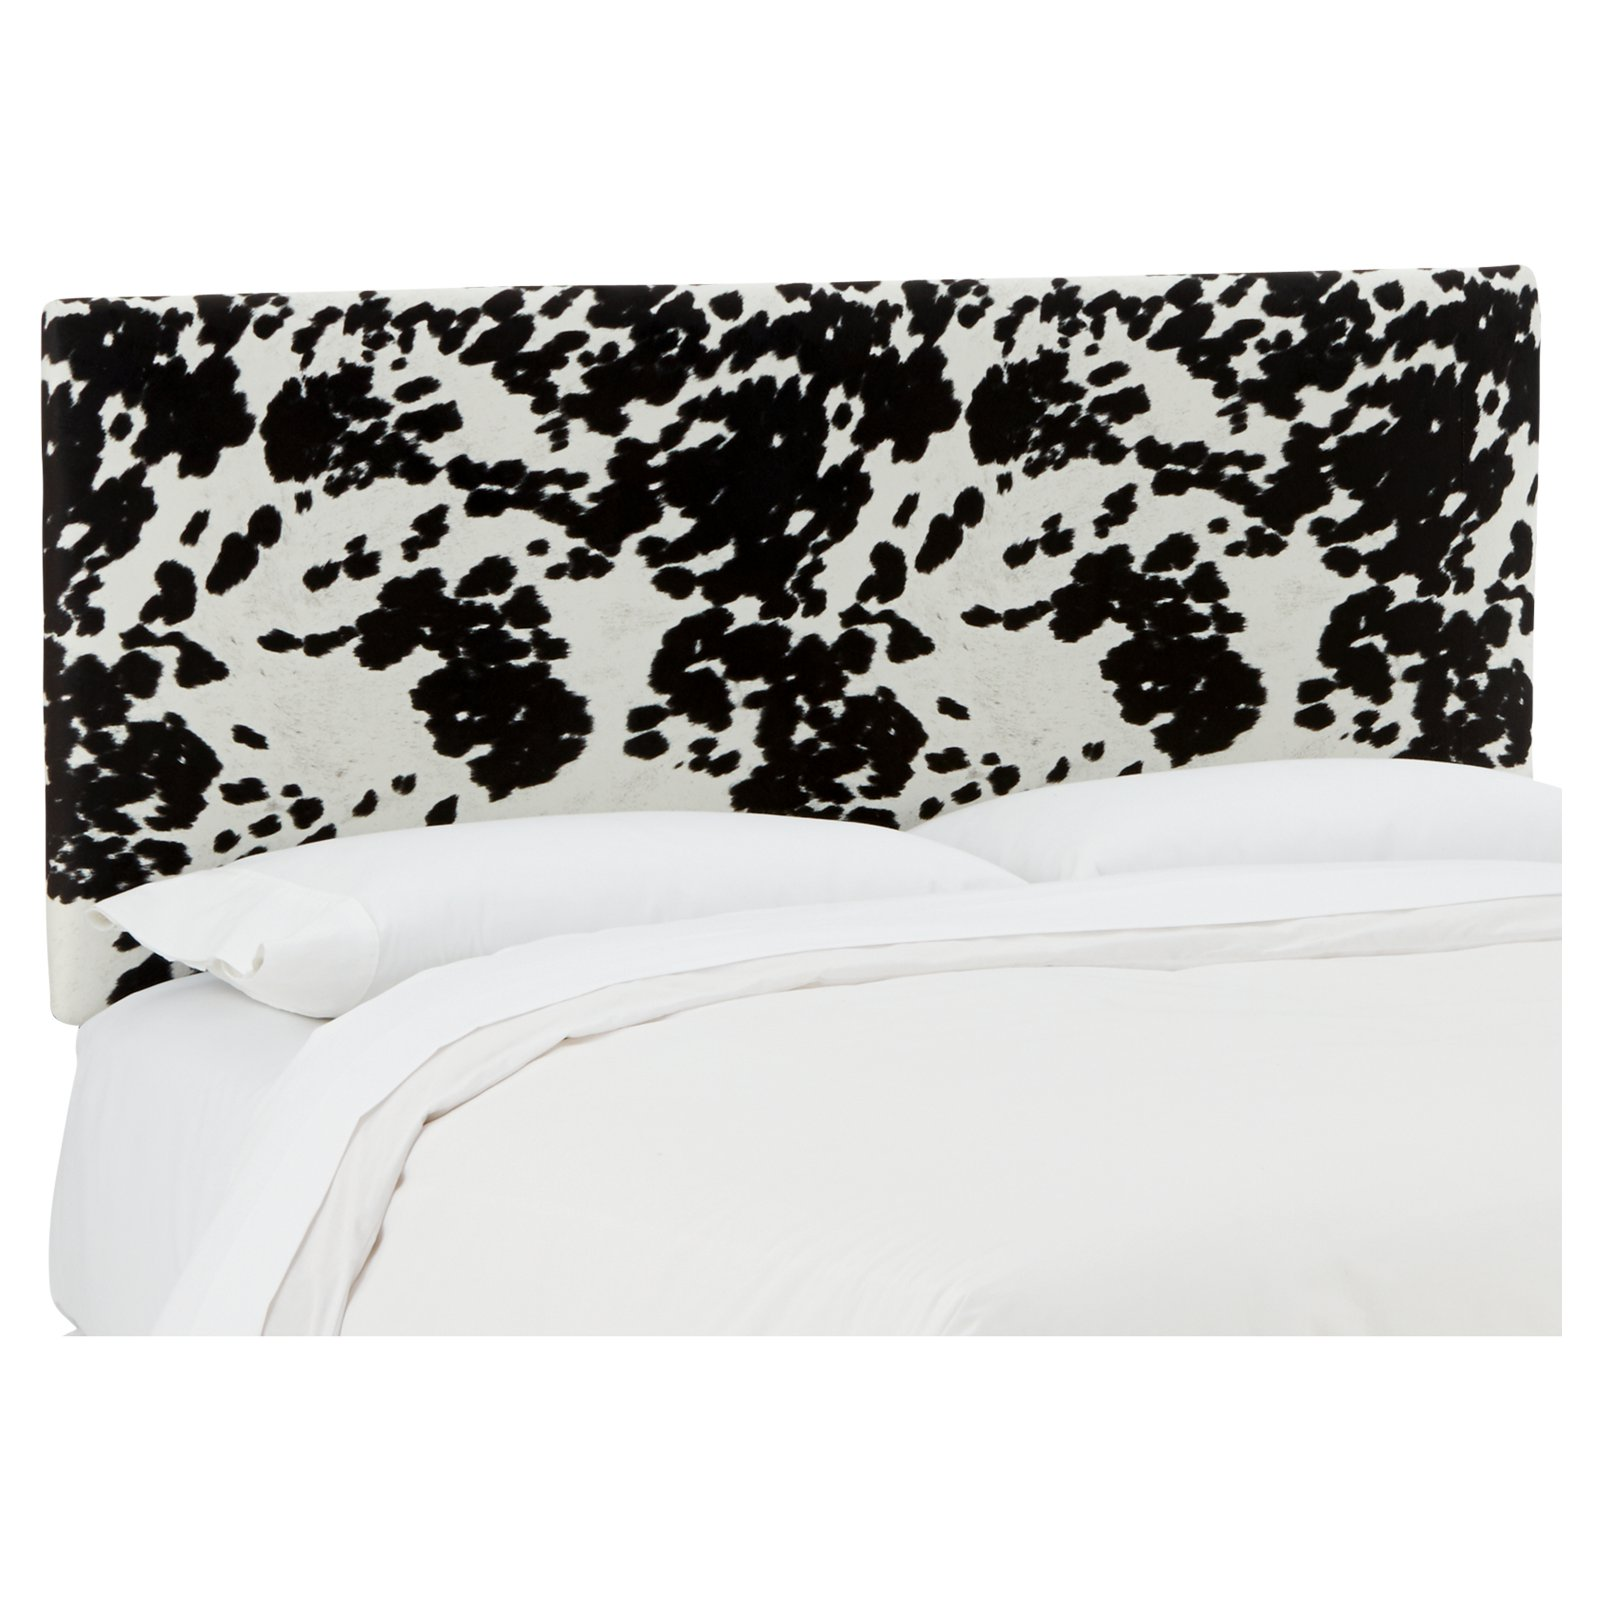 Skyline Udder Madness Upholstered Headboard